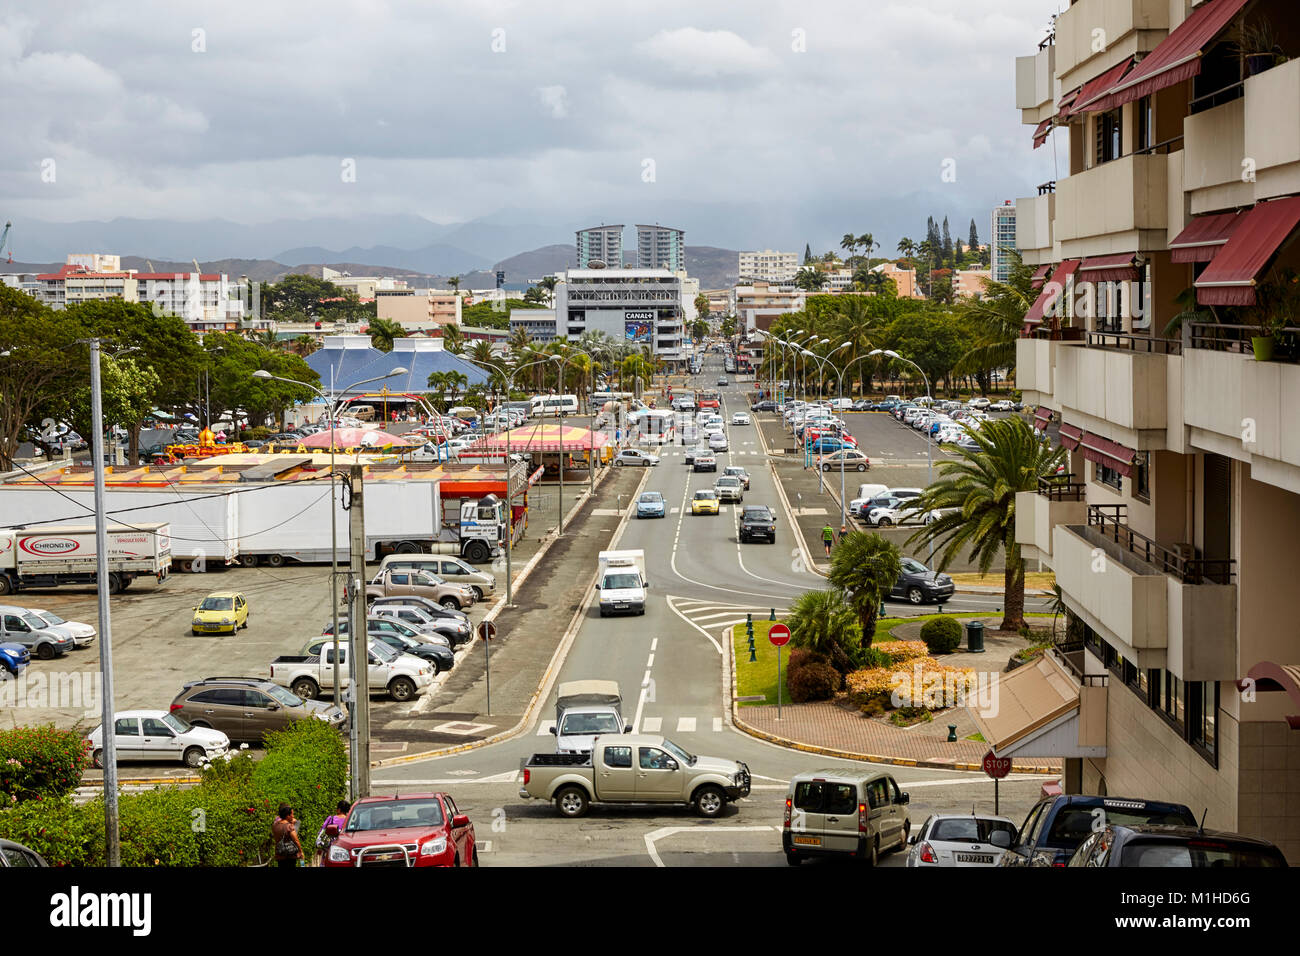 Rue Georges Clemenceau, Noumea, New Caledonia (Nouvelle-Caledonie) - Stock Image